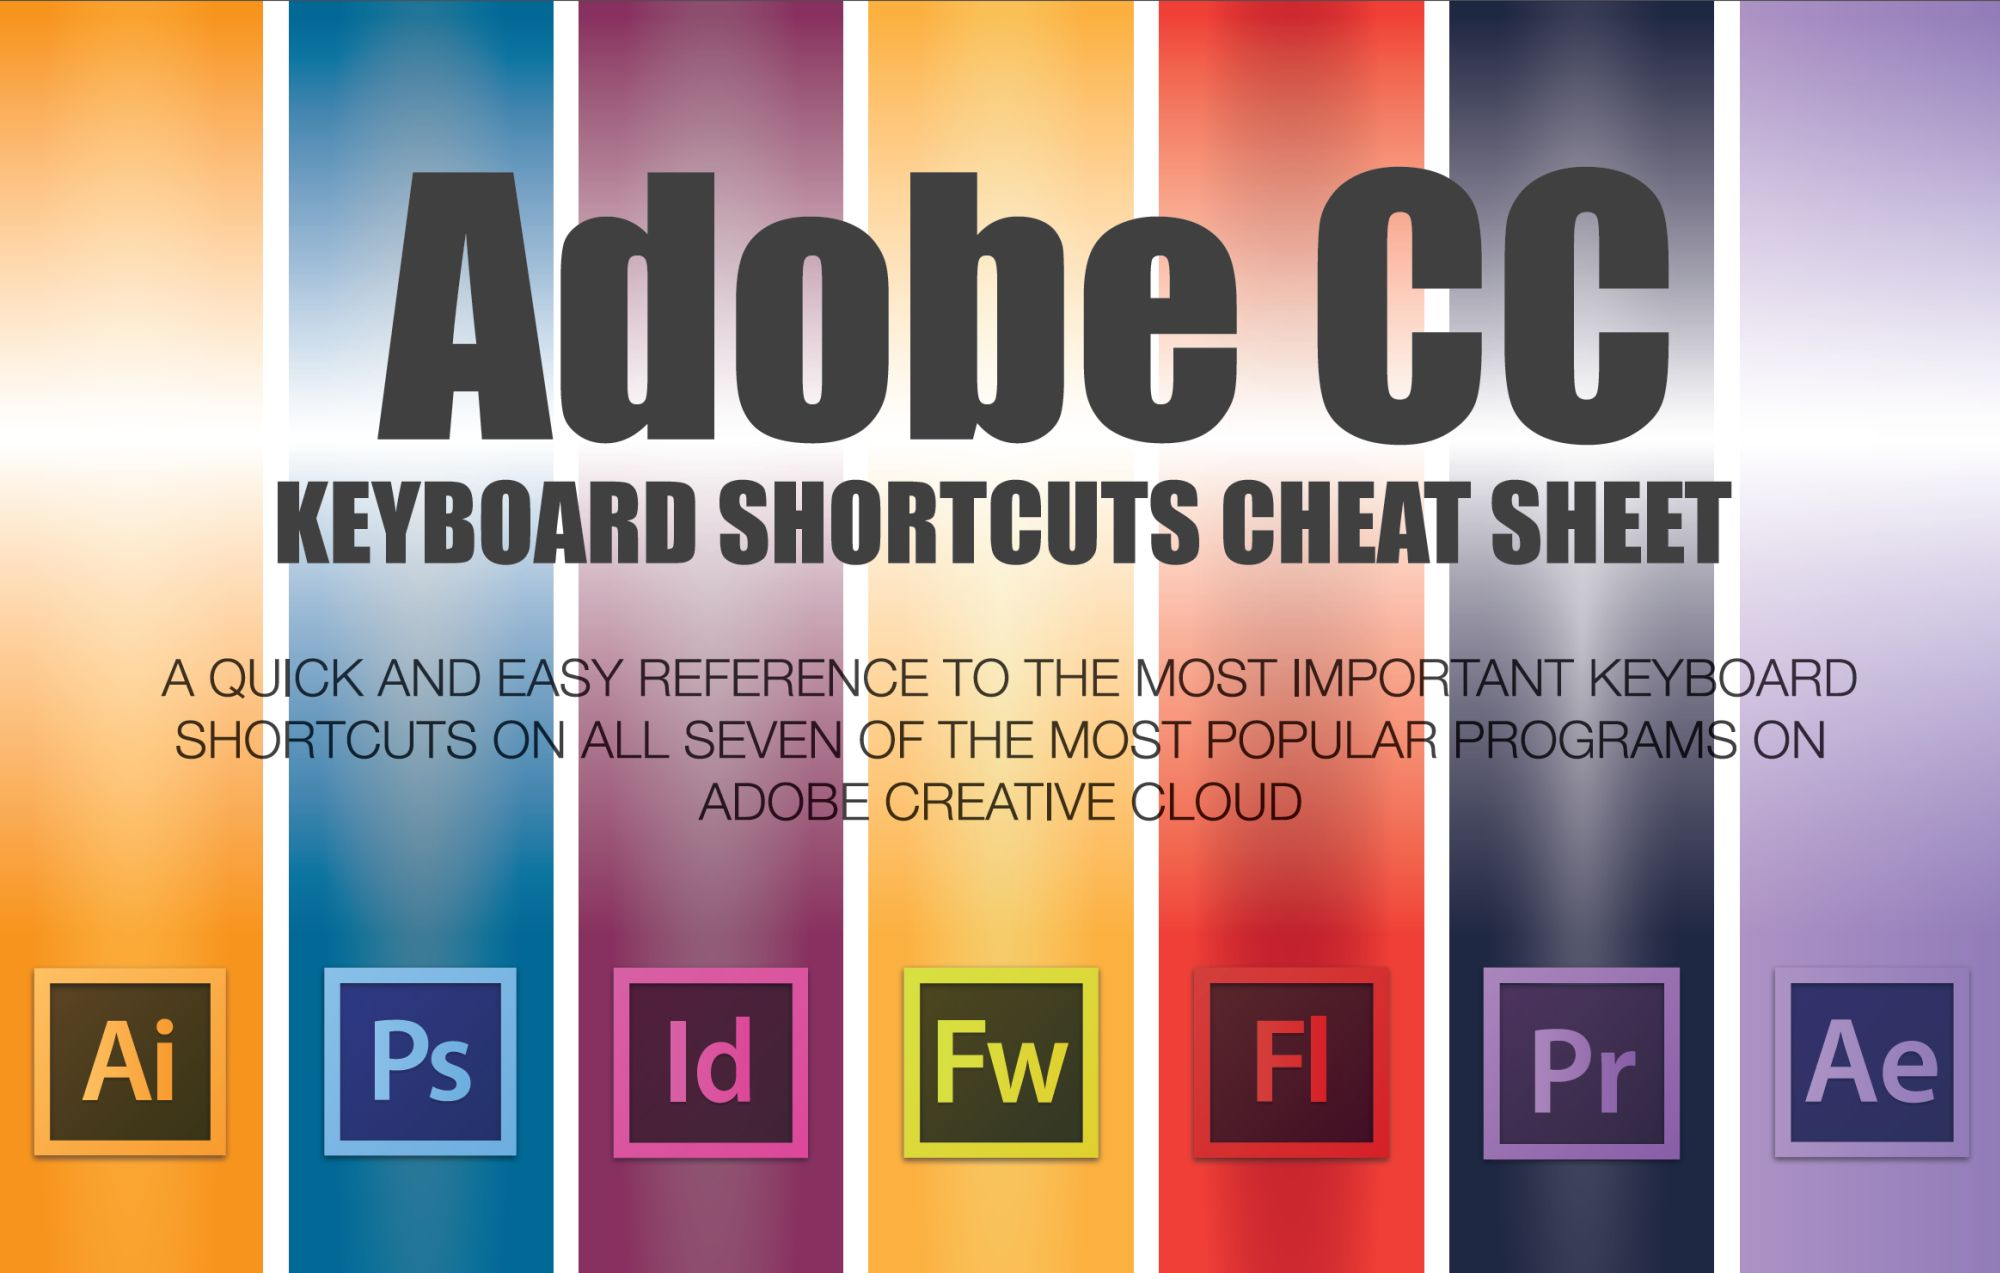 Adobe Photoshop and Lightroom + more CC Cheat Sheets